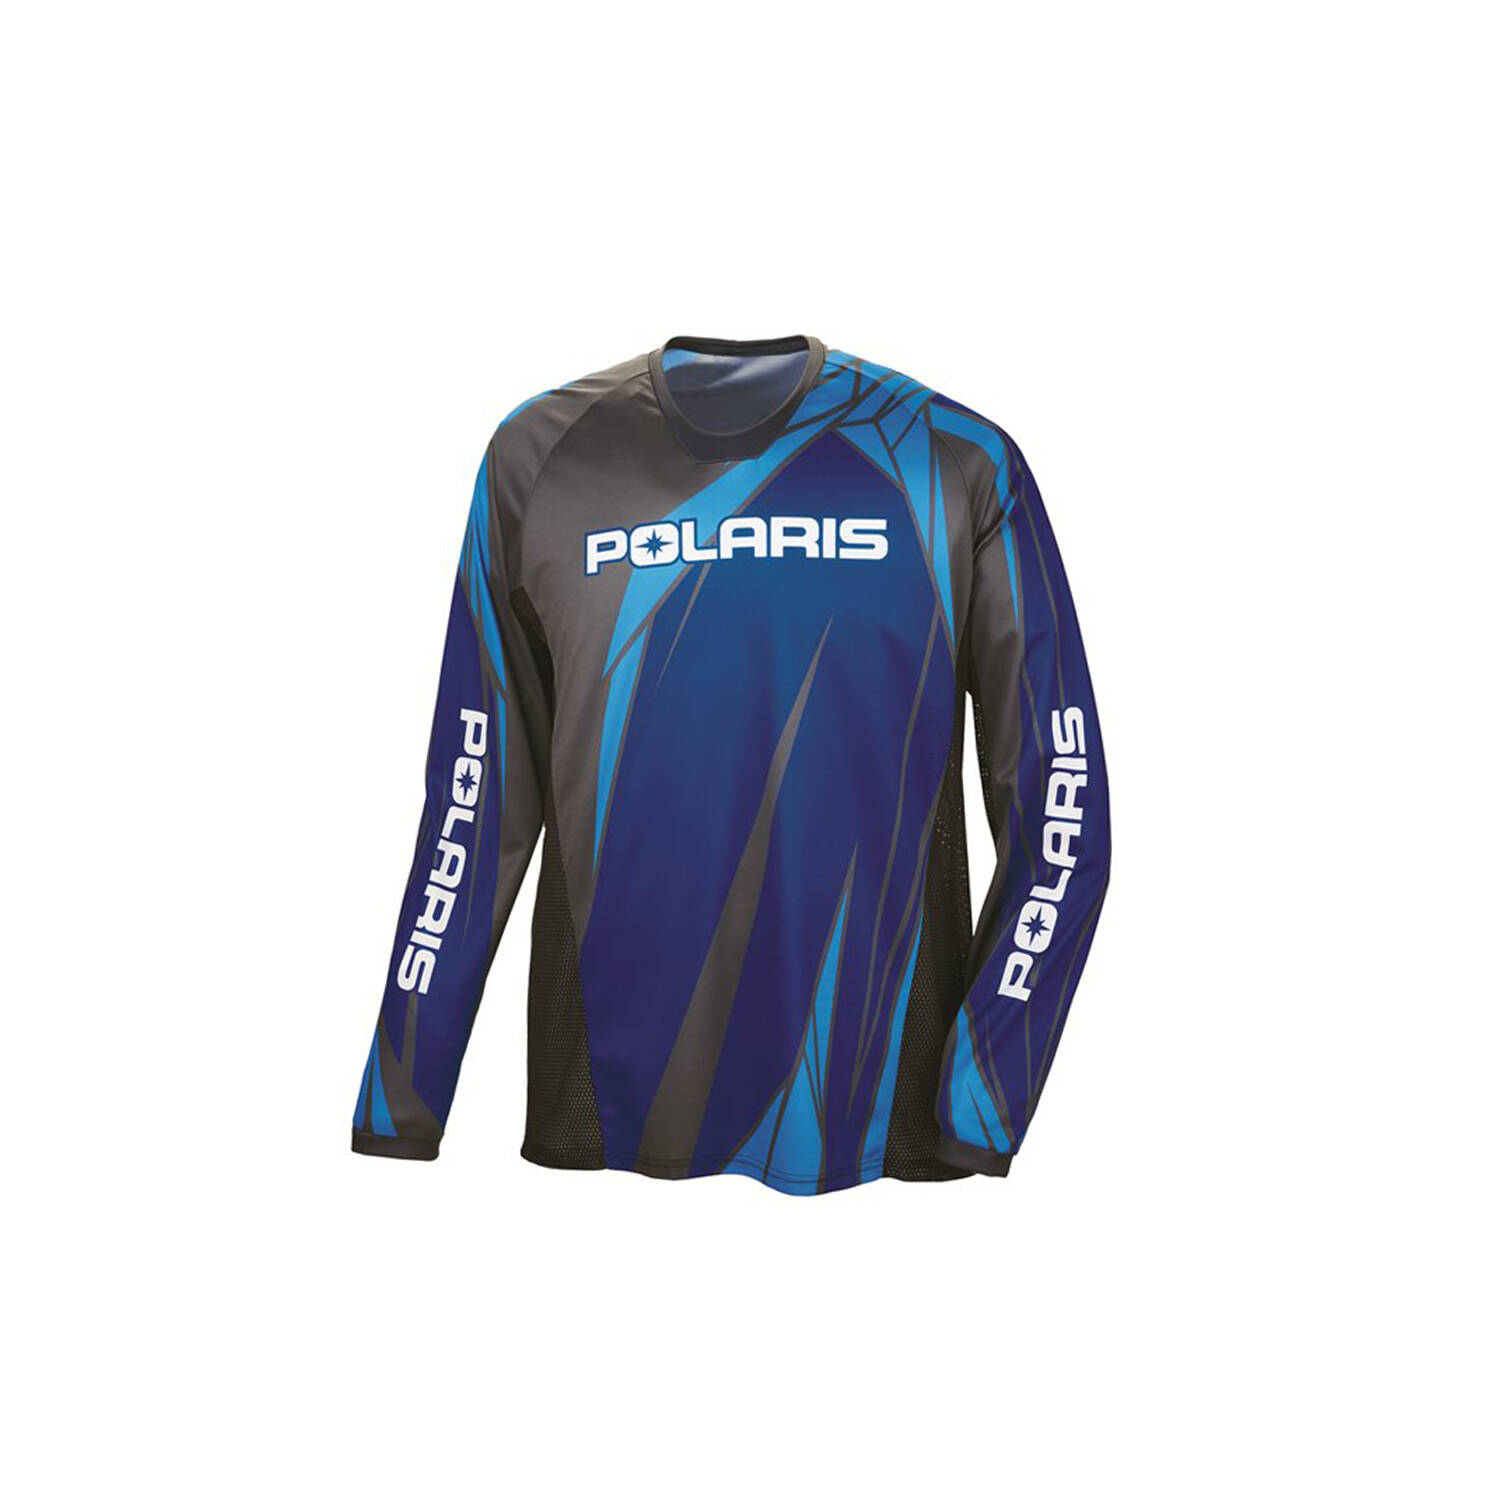 Unisex Long-Sleeve Off-Road Riding Jersey with Mesh Ventilated Panels, Blue